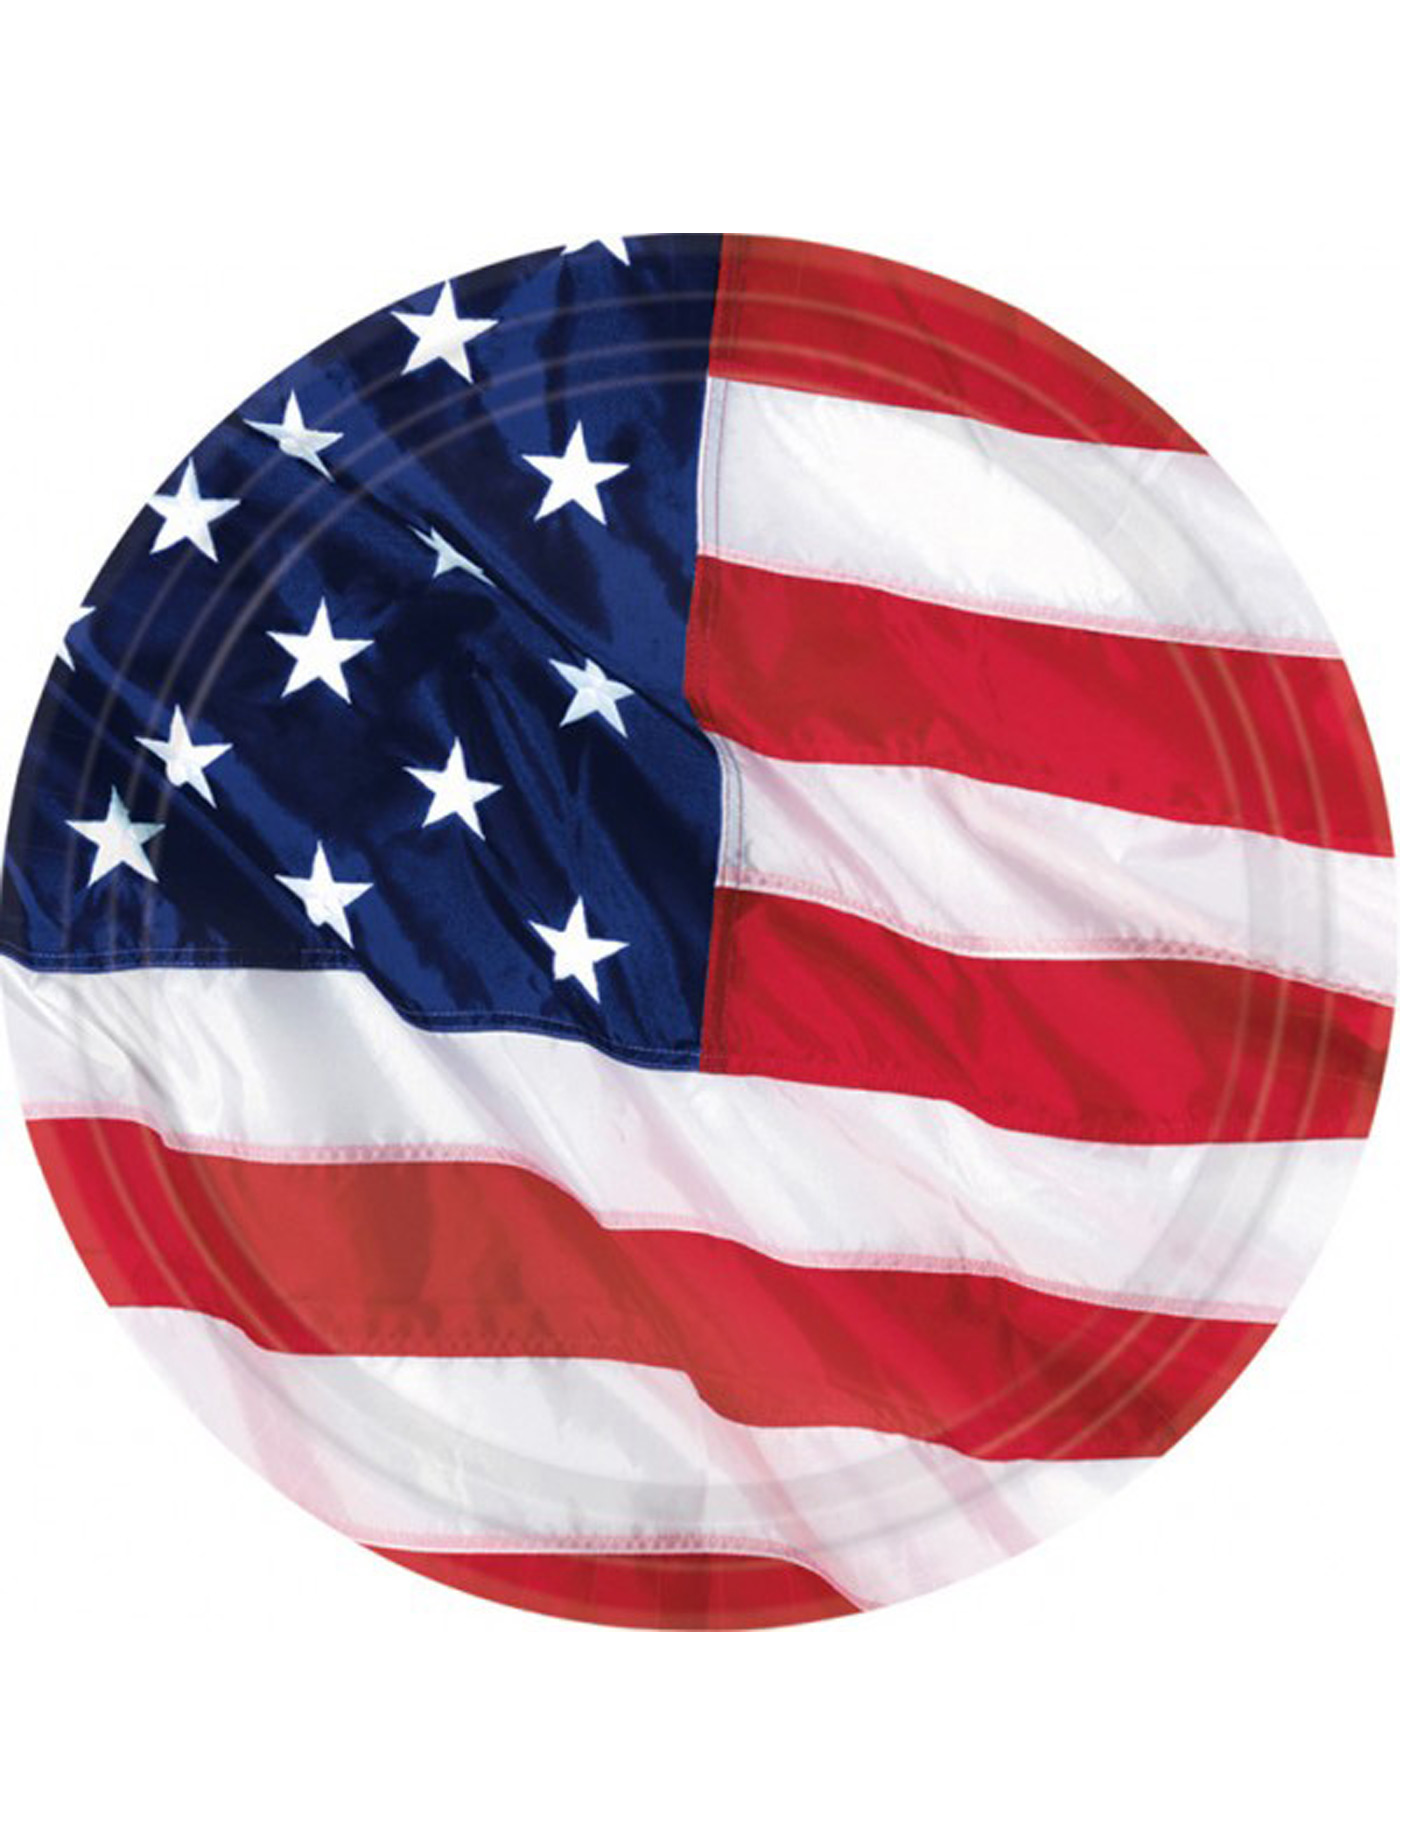 American flag plates decorations and fancy dress for American flag decoration